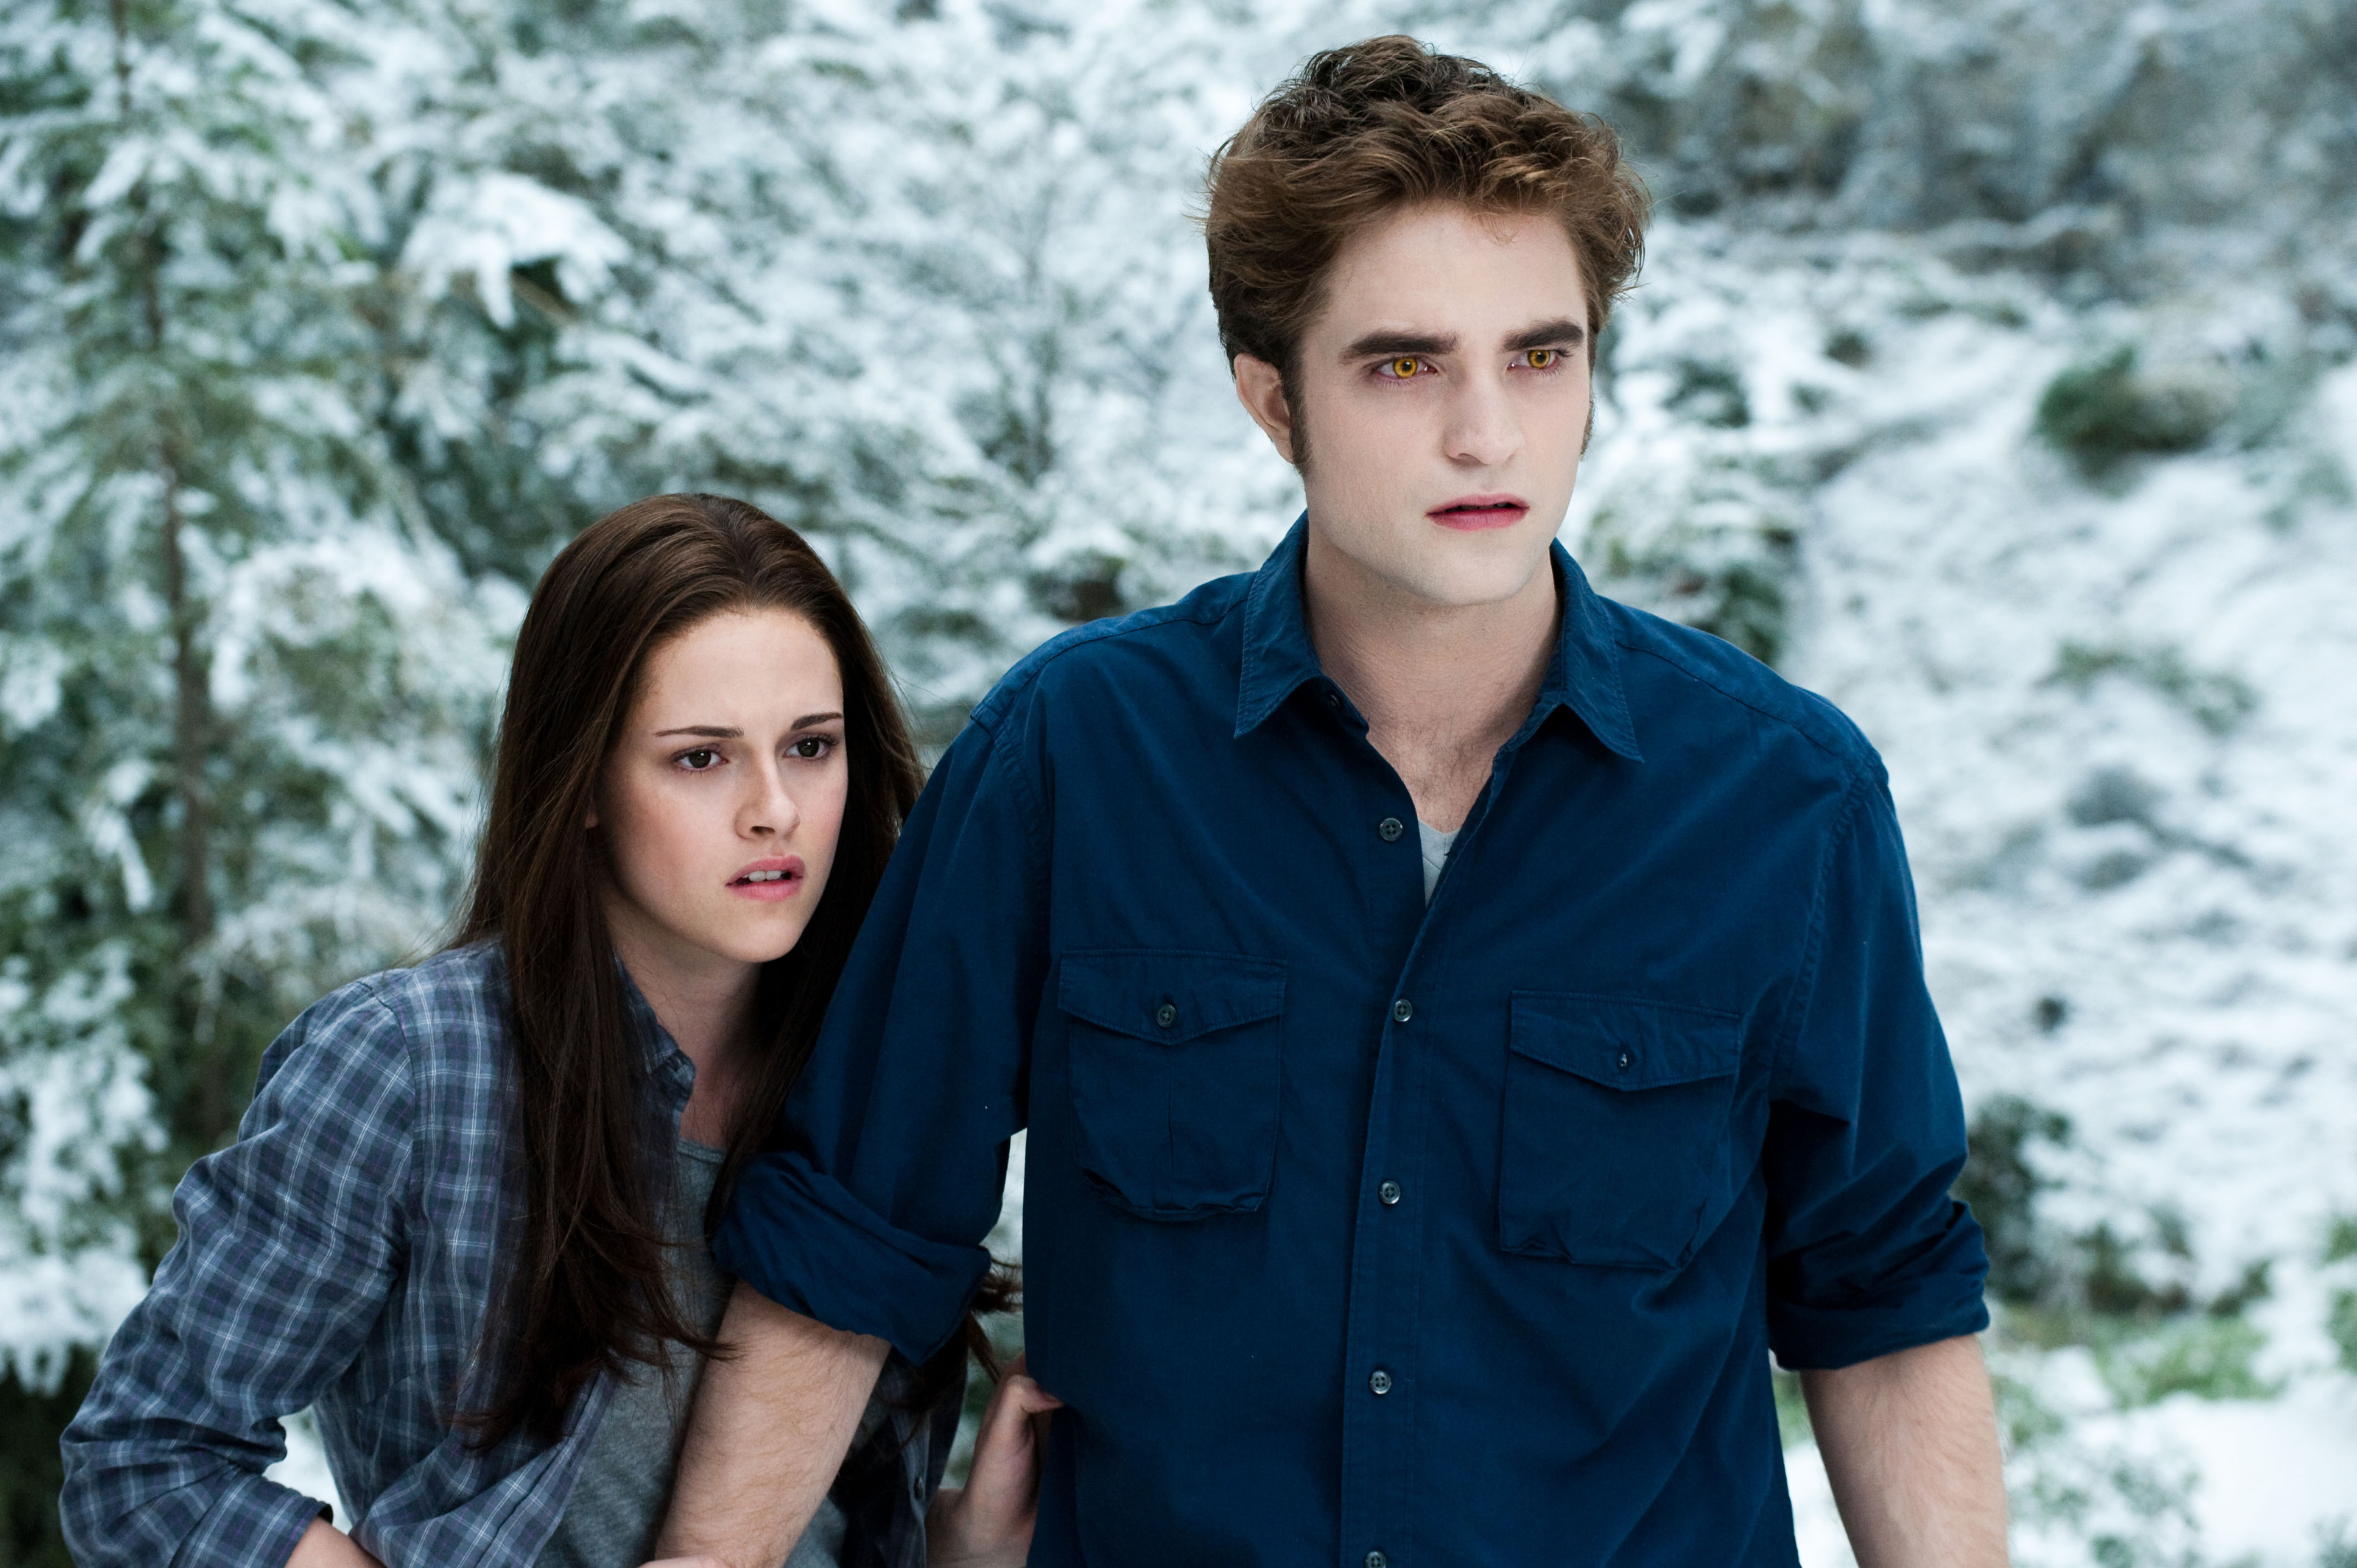 http://images.wikia.com/twilightsaga/images/f/f4/DF-12925R.jpg